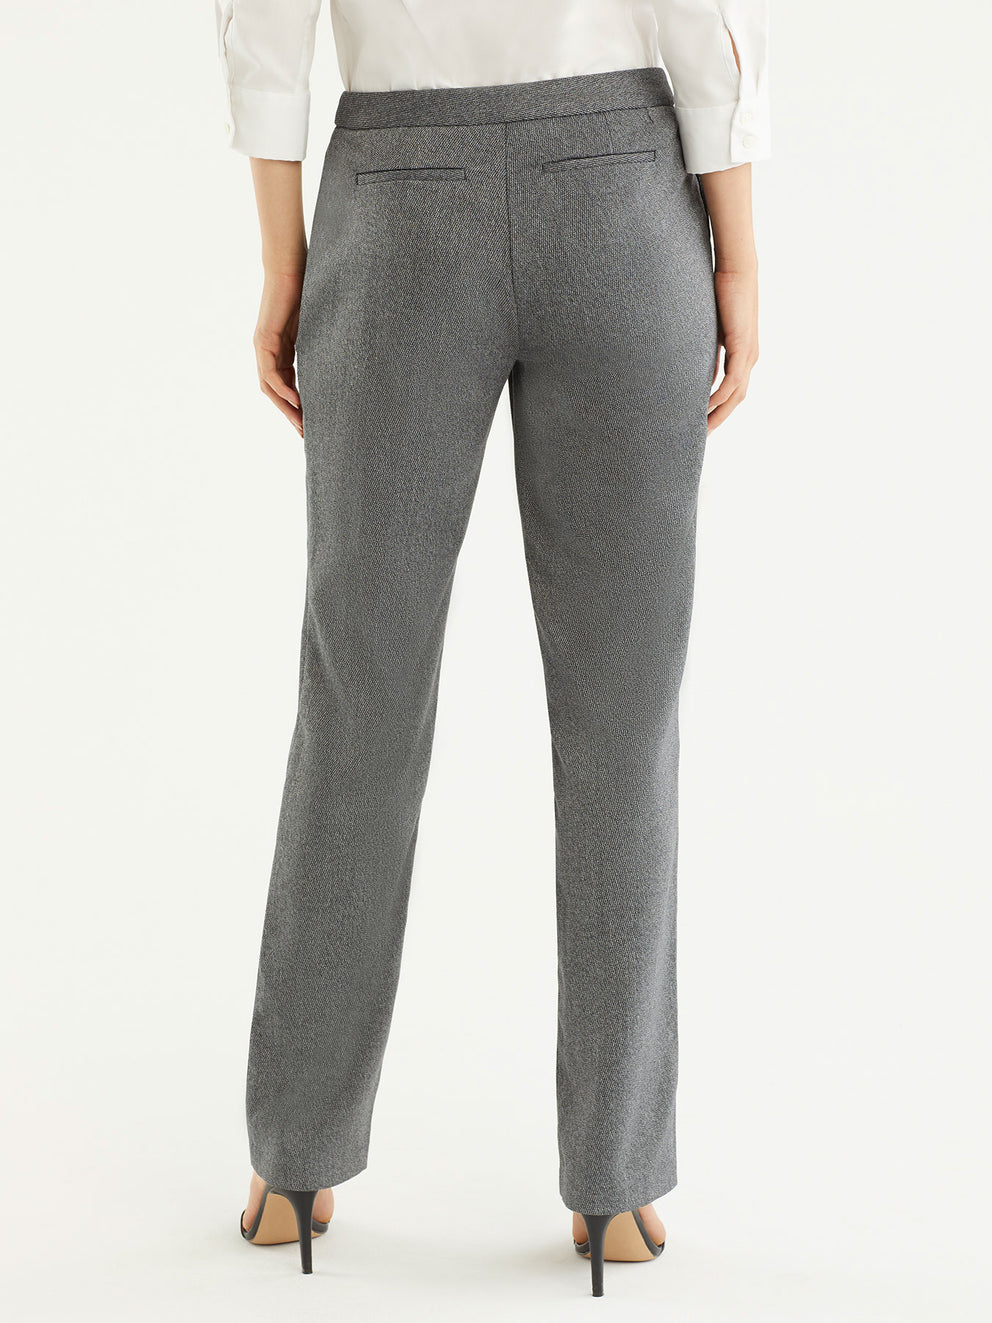 Broken Twill Sydney Pant Color Pewter Ivory